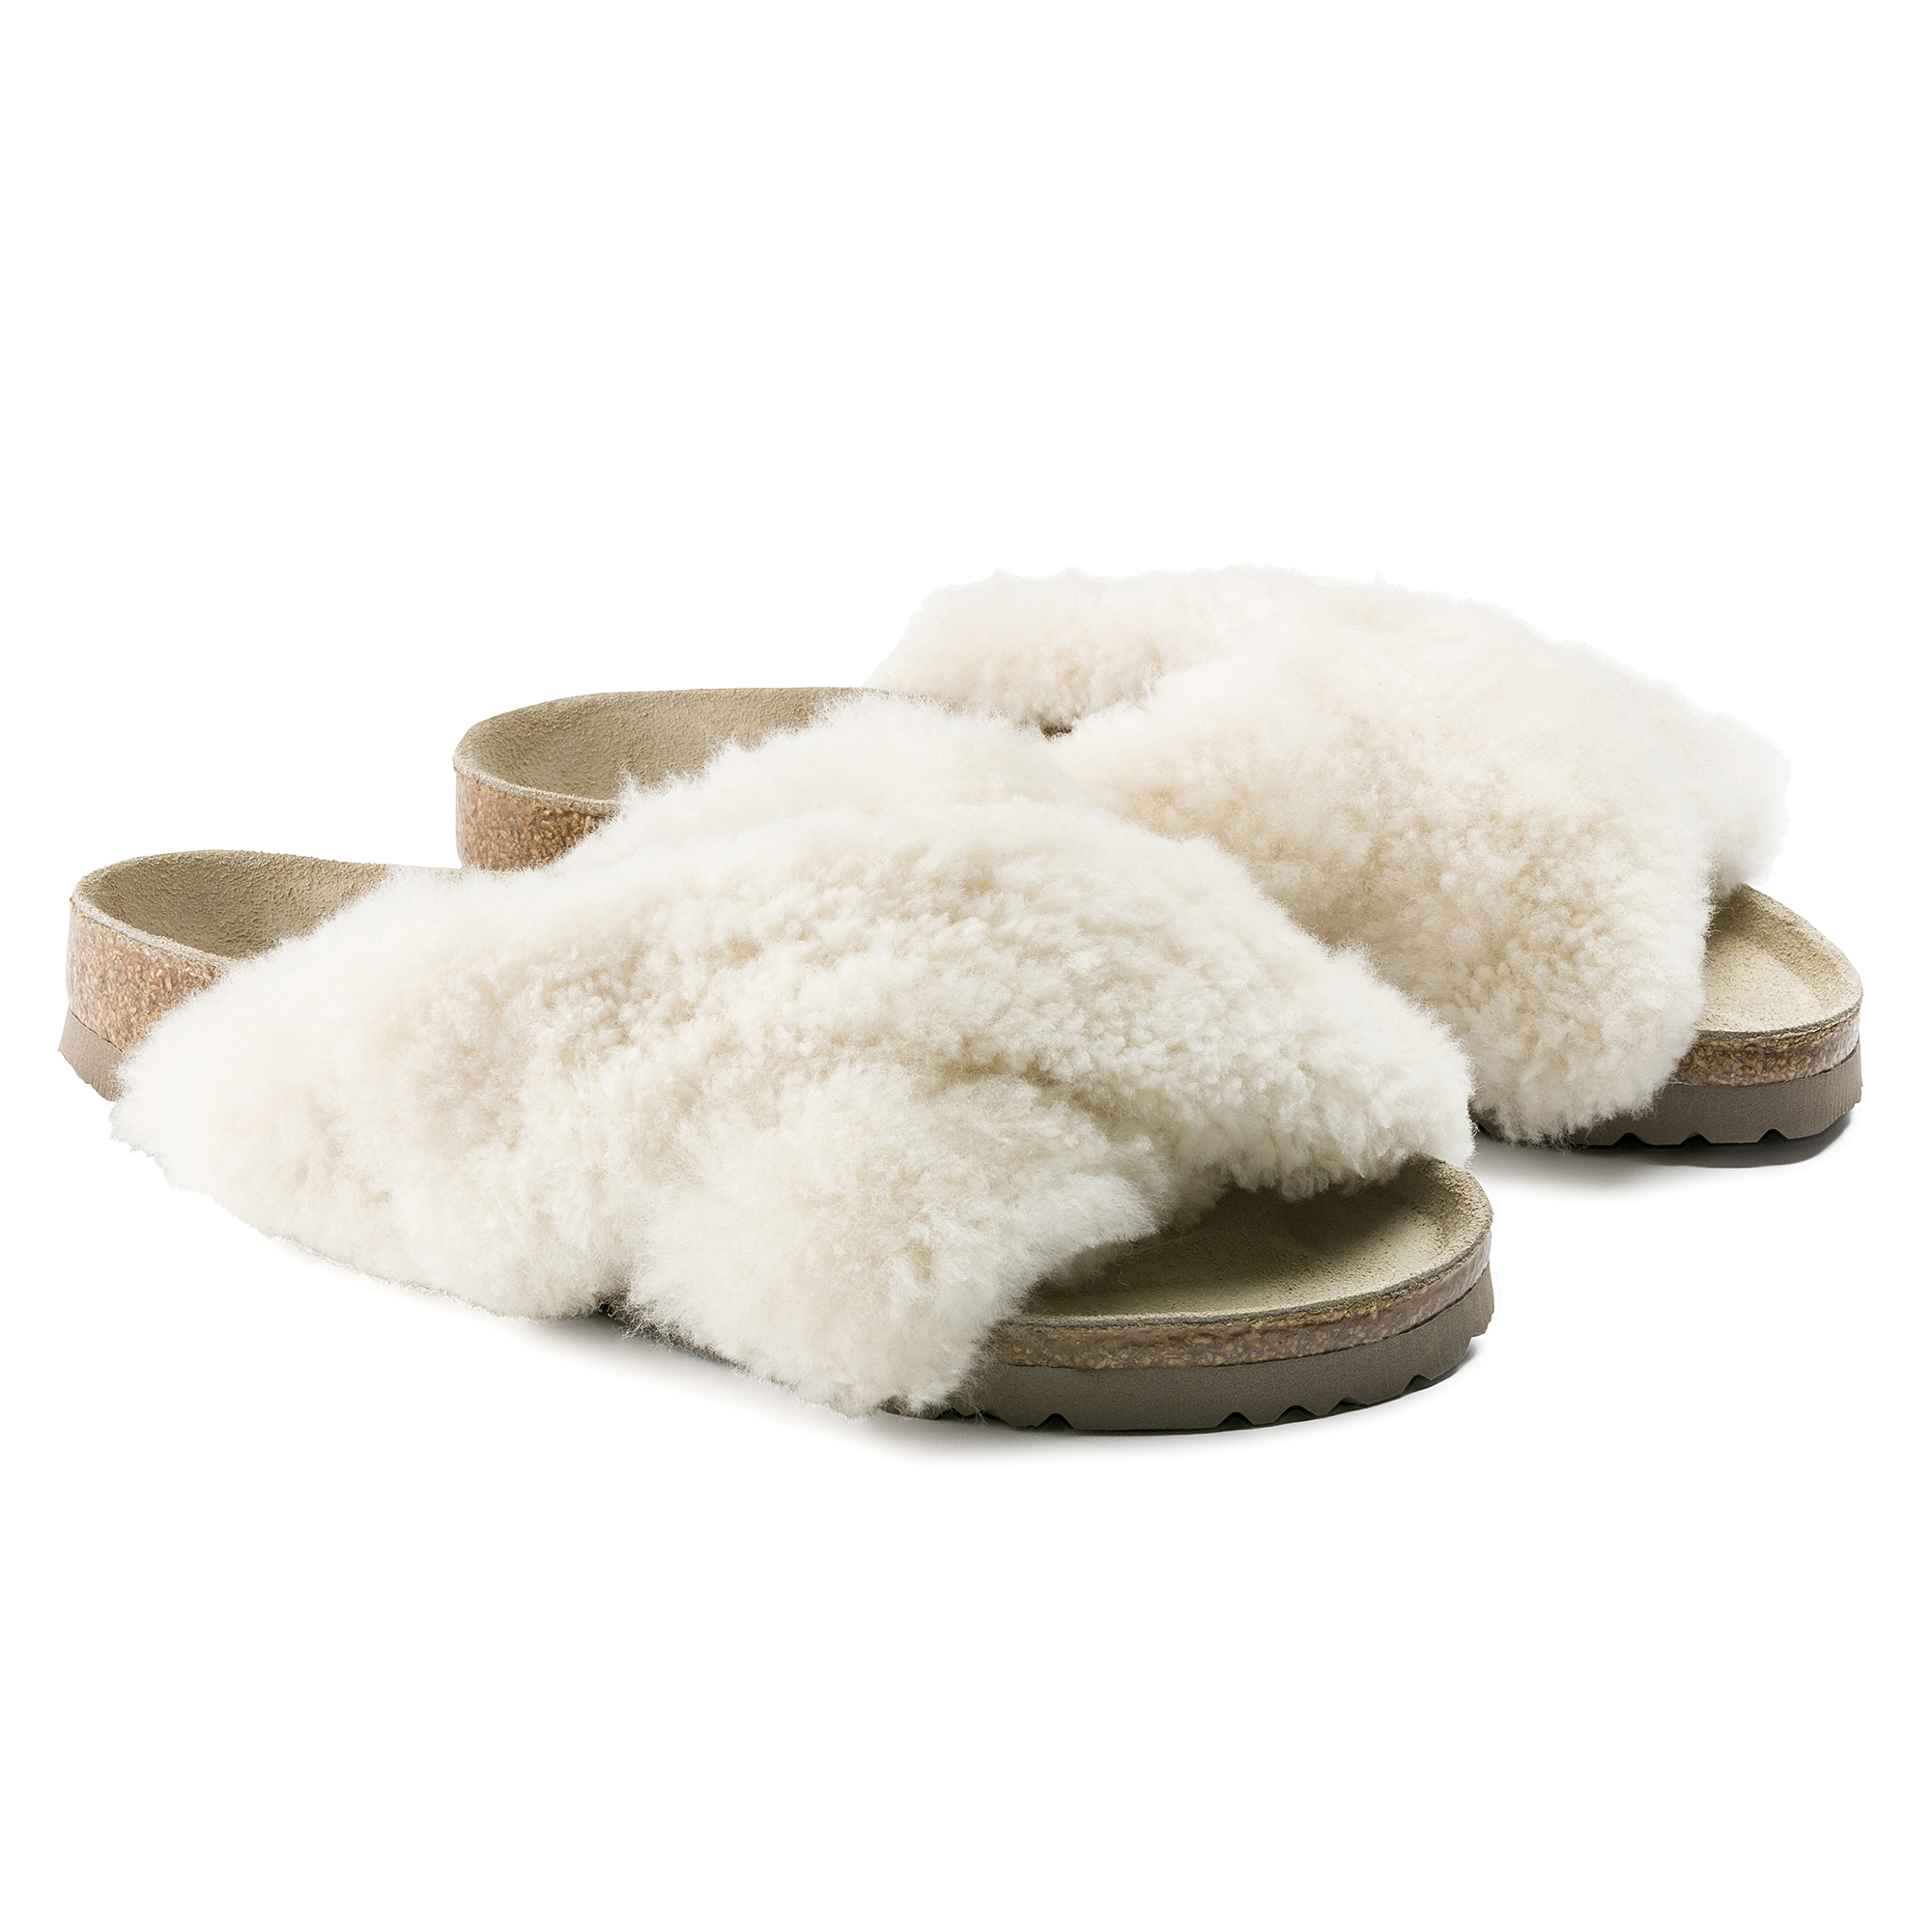 Birkenstock Women's Birkenstock Papillio Daytona Suede Shearling Slide Sandals from shoes | ShapeShop